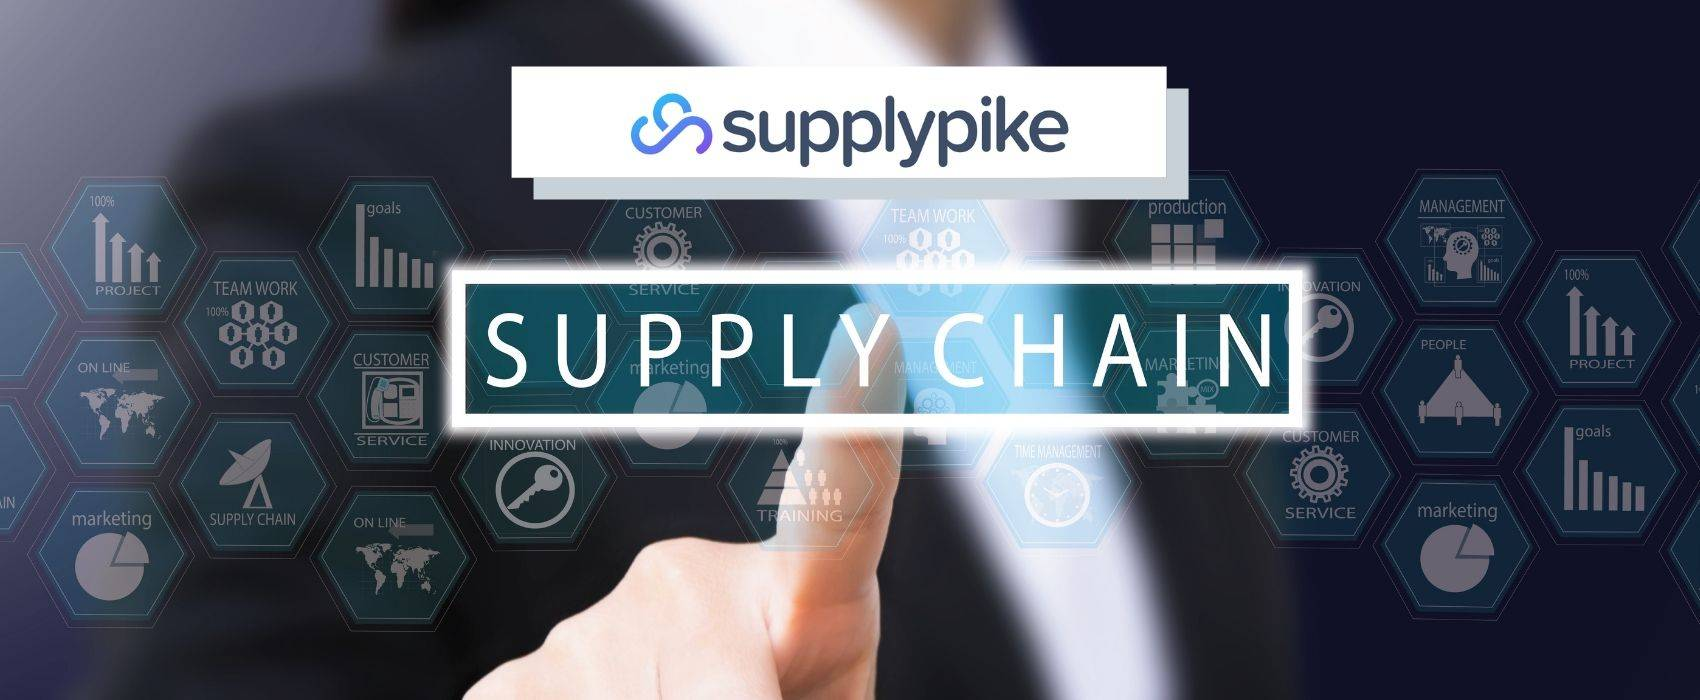 supply pike